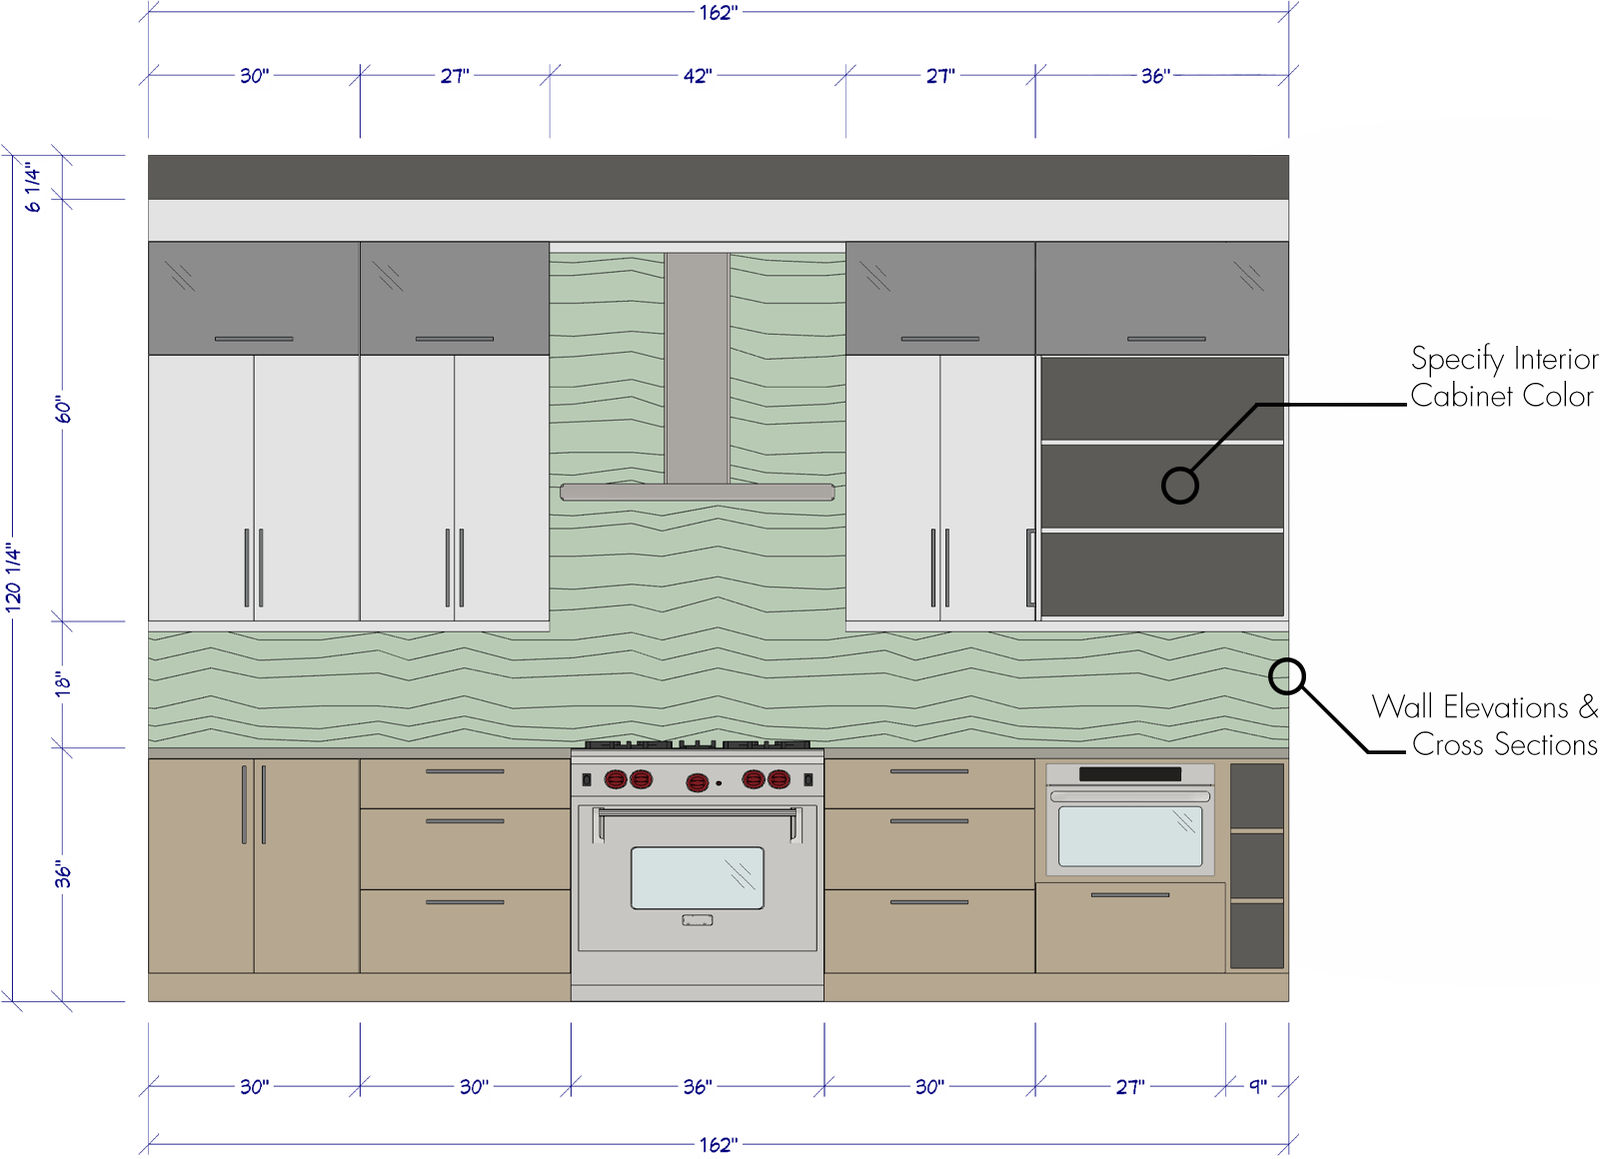 Kitchen wall elevation with dimensions.